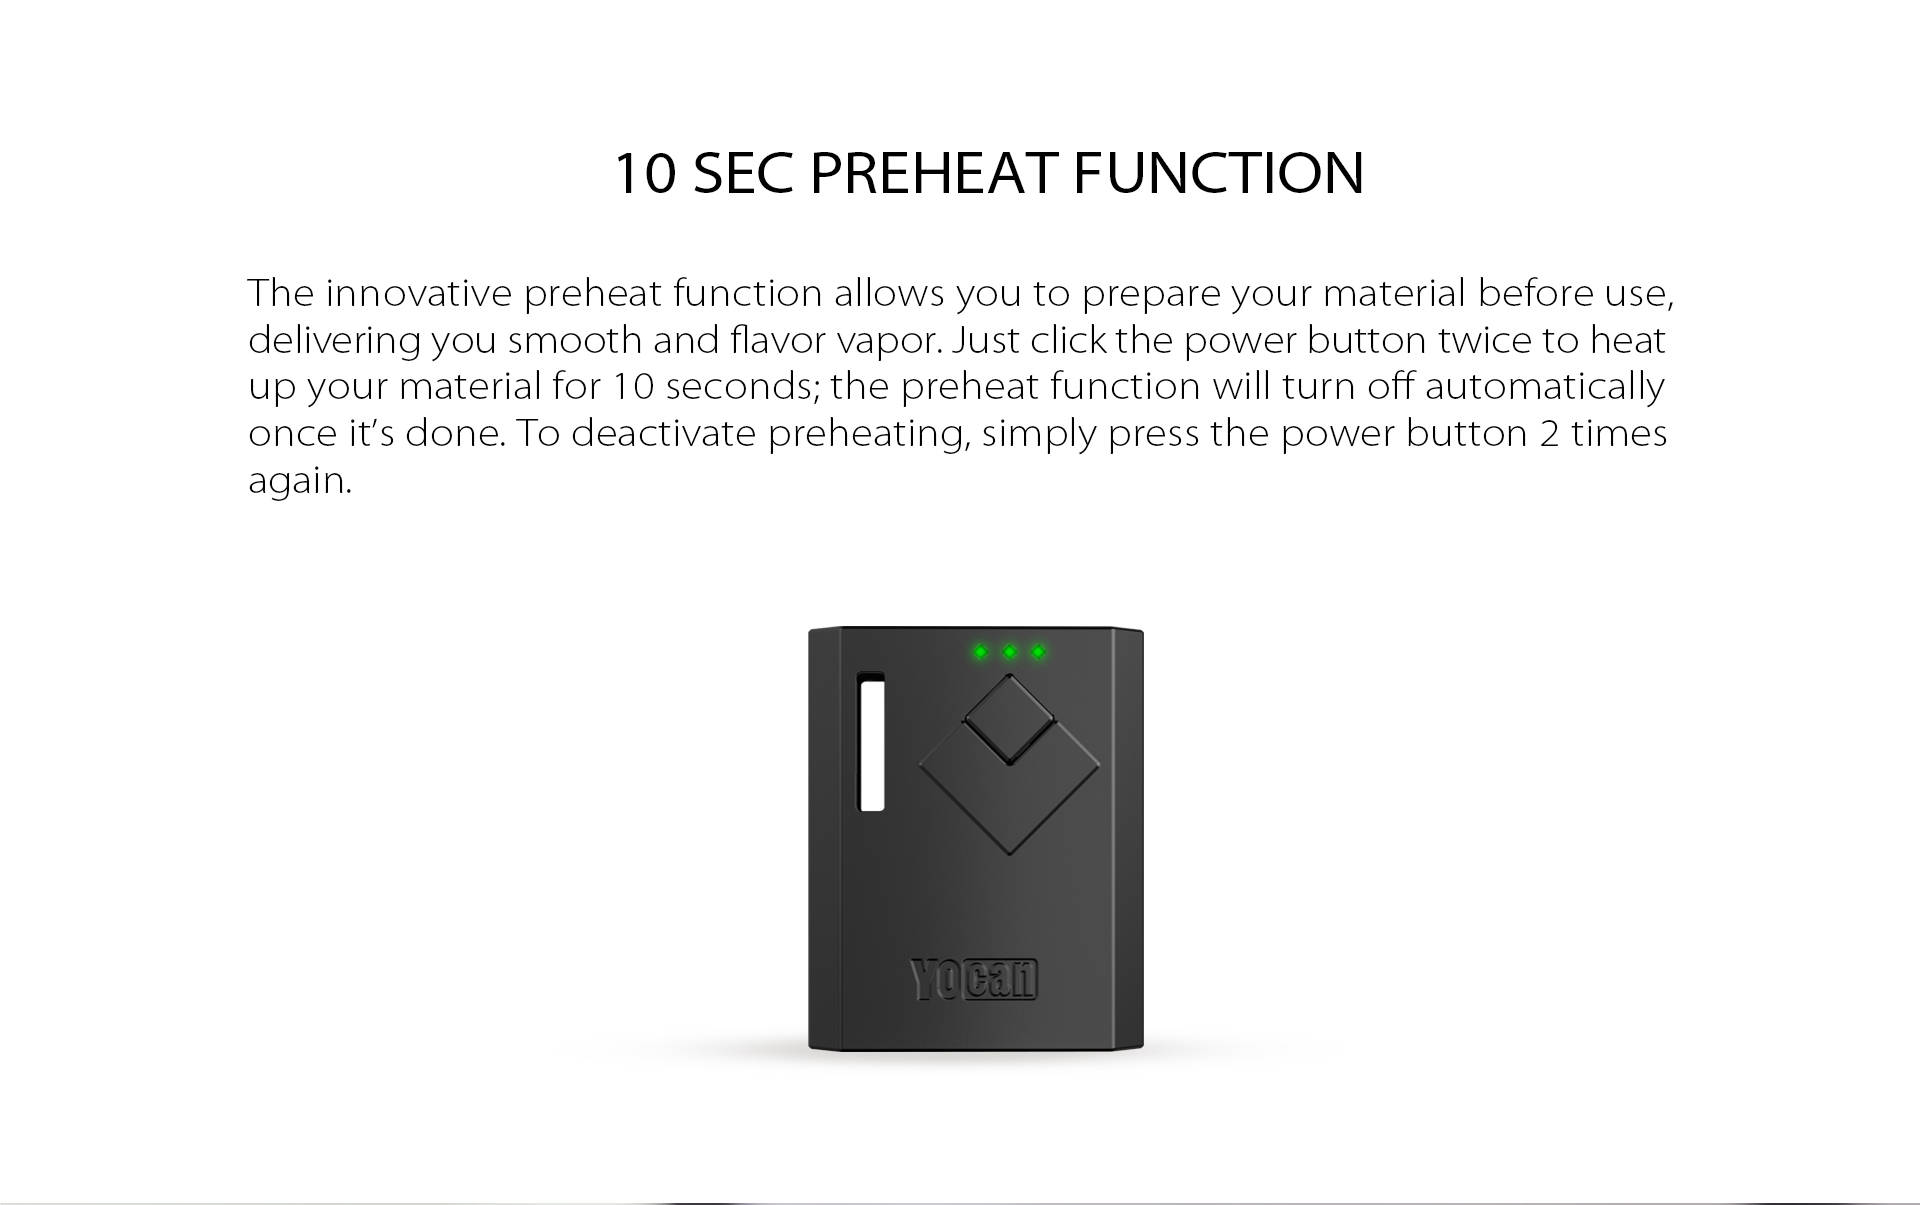 The Yocan Wit Box Mod Battery features 10 sec preheat function.